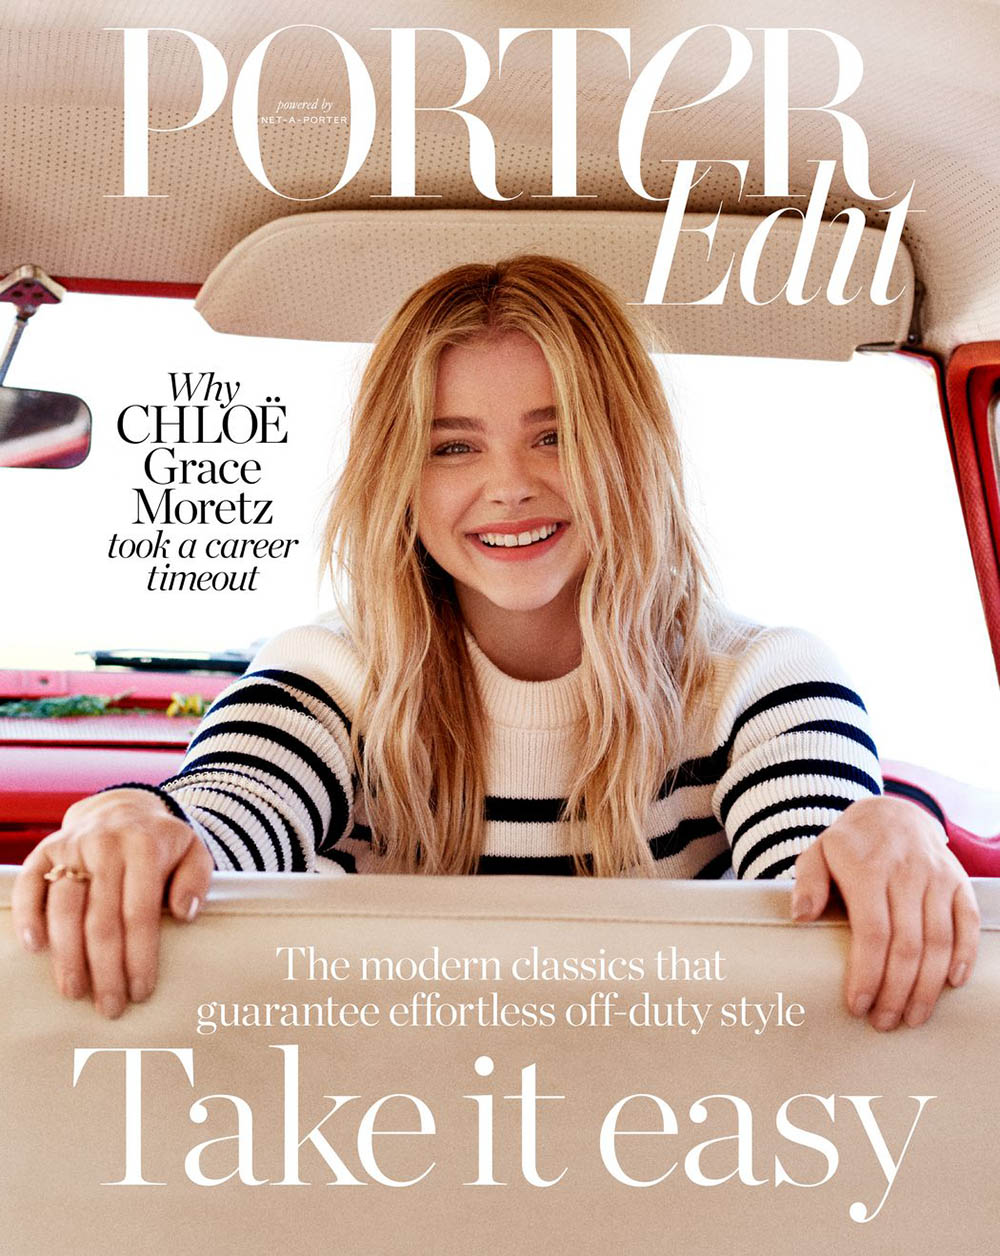 Chloë Grace Moretz covers Porter Edit August 17th, 2018 by Bec Lorrimer